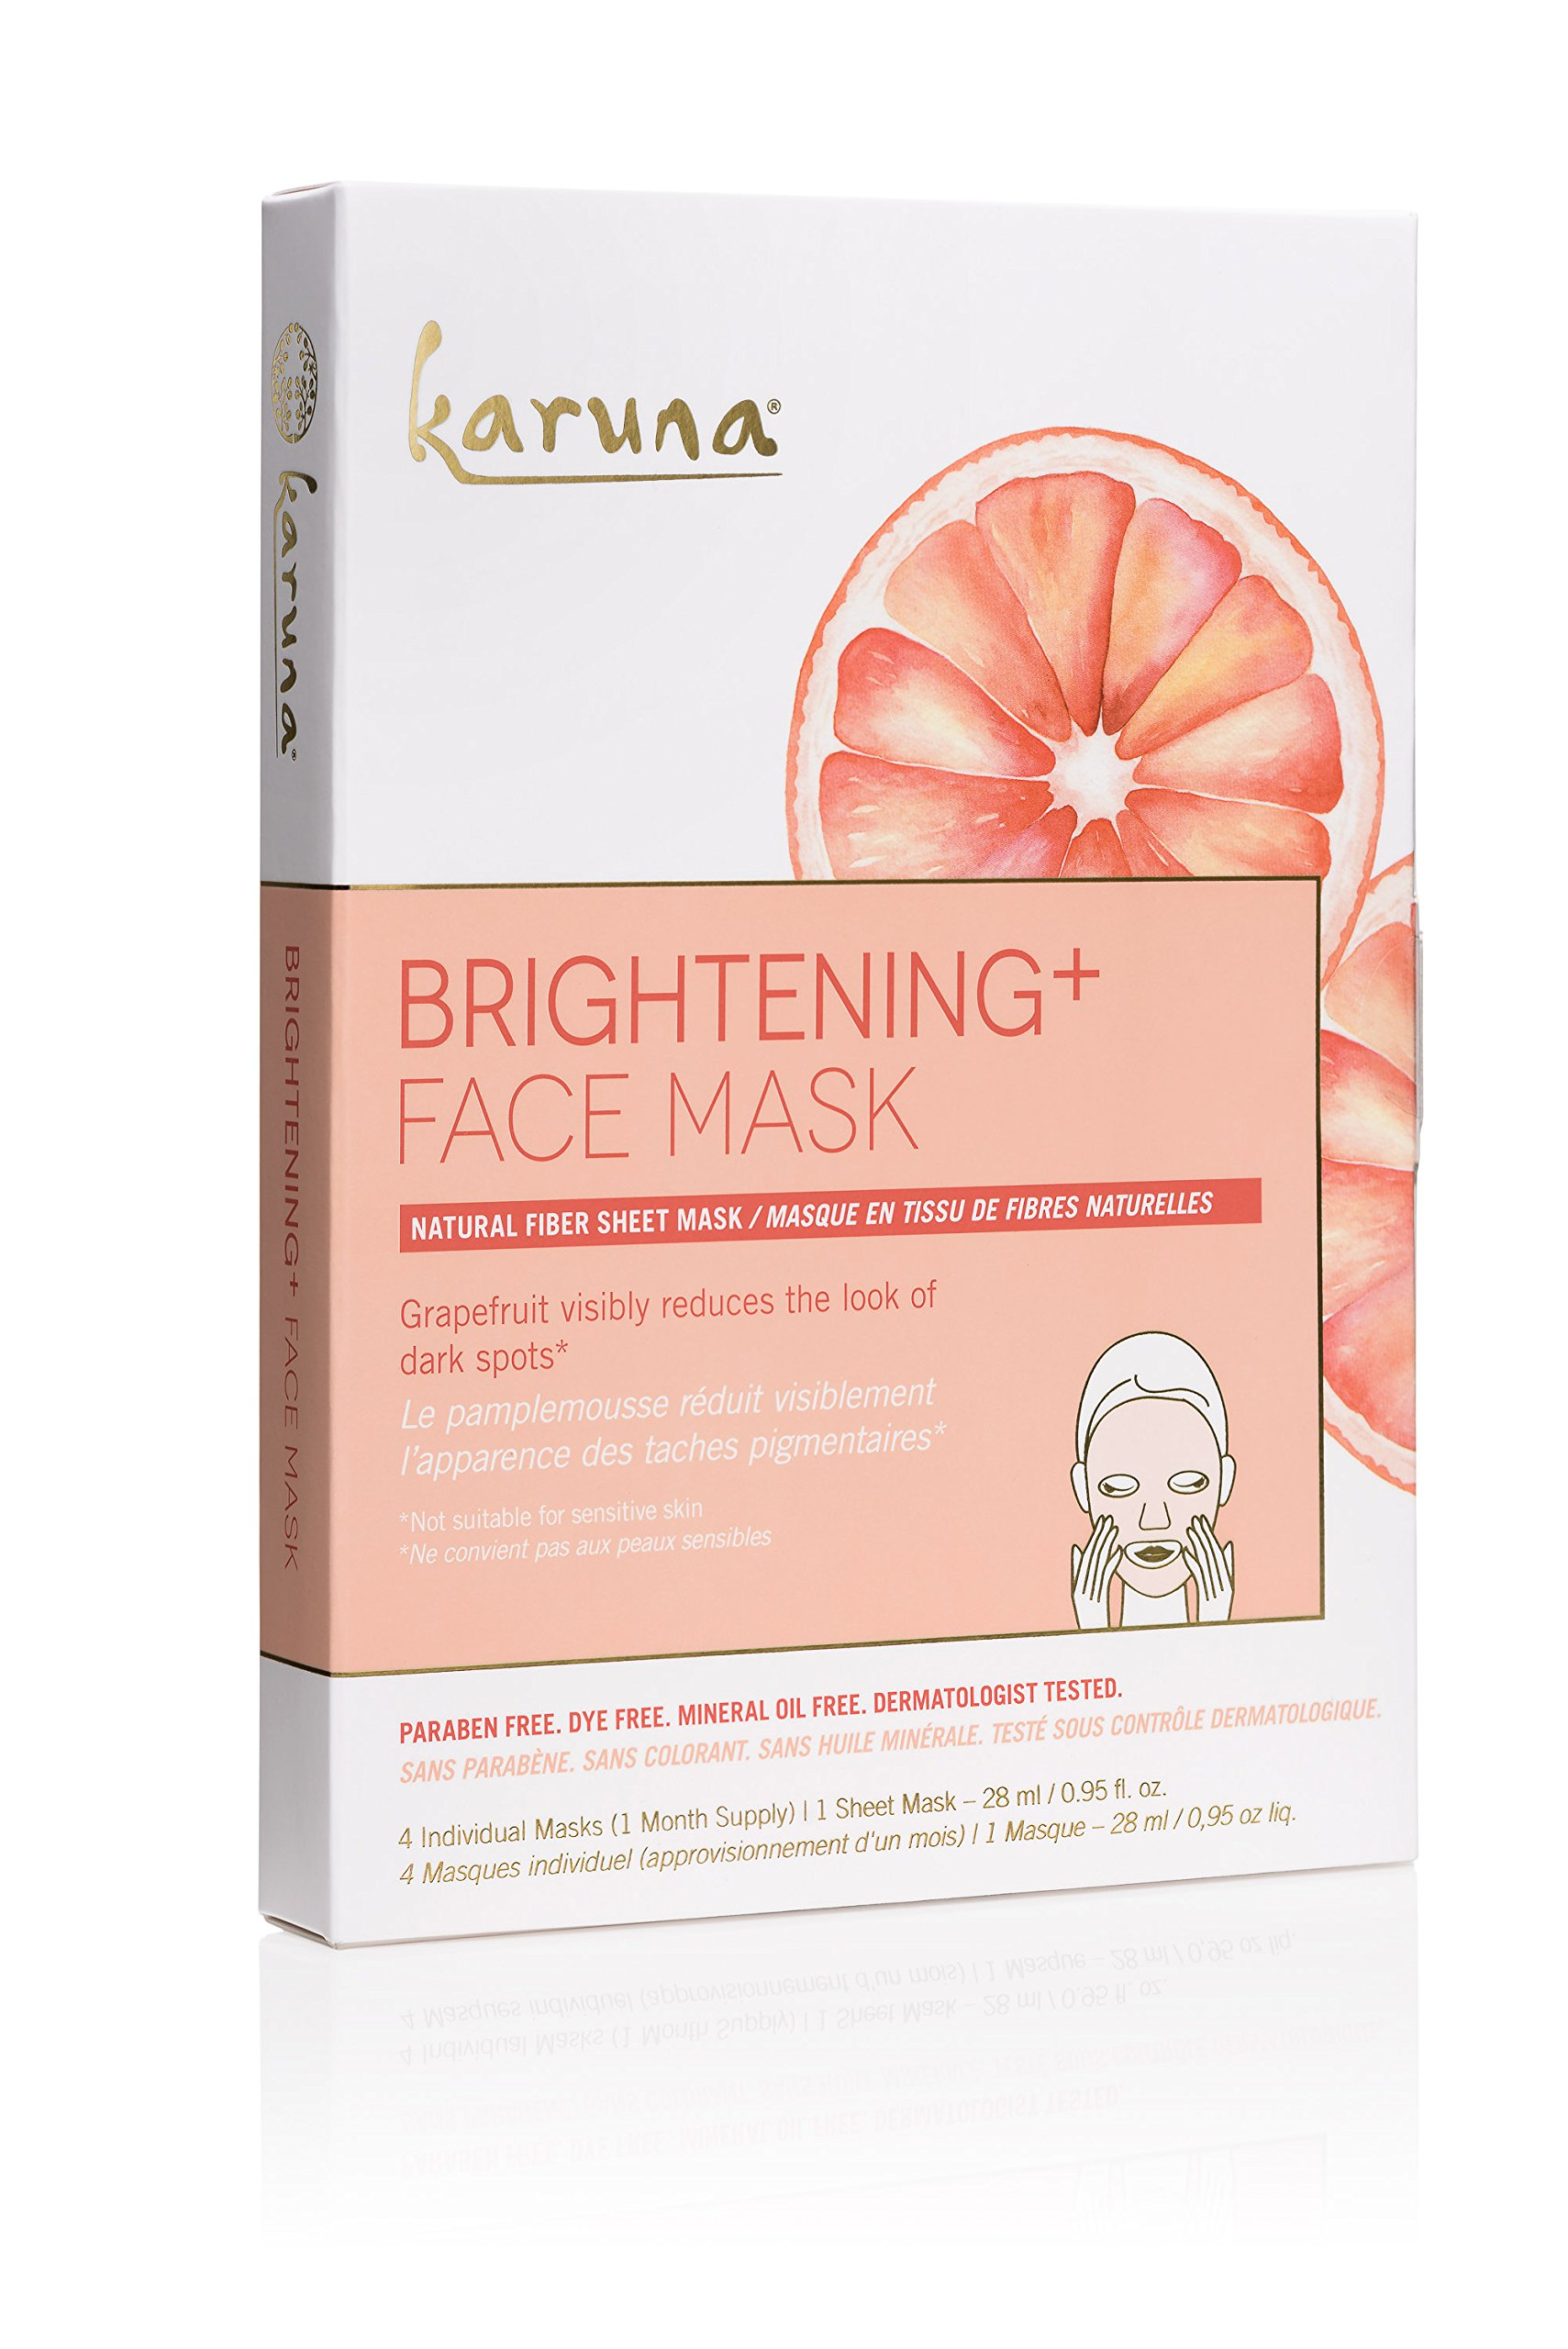 Clarifying Face Sheet Mask - 1 Count by Karuna (pack of 12) Obagi Nuderm TRANSFORMATION SYSTEM Kit of 6 items Normal to Oily Skin SEALED